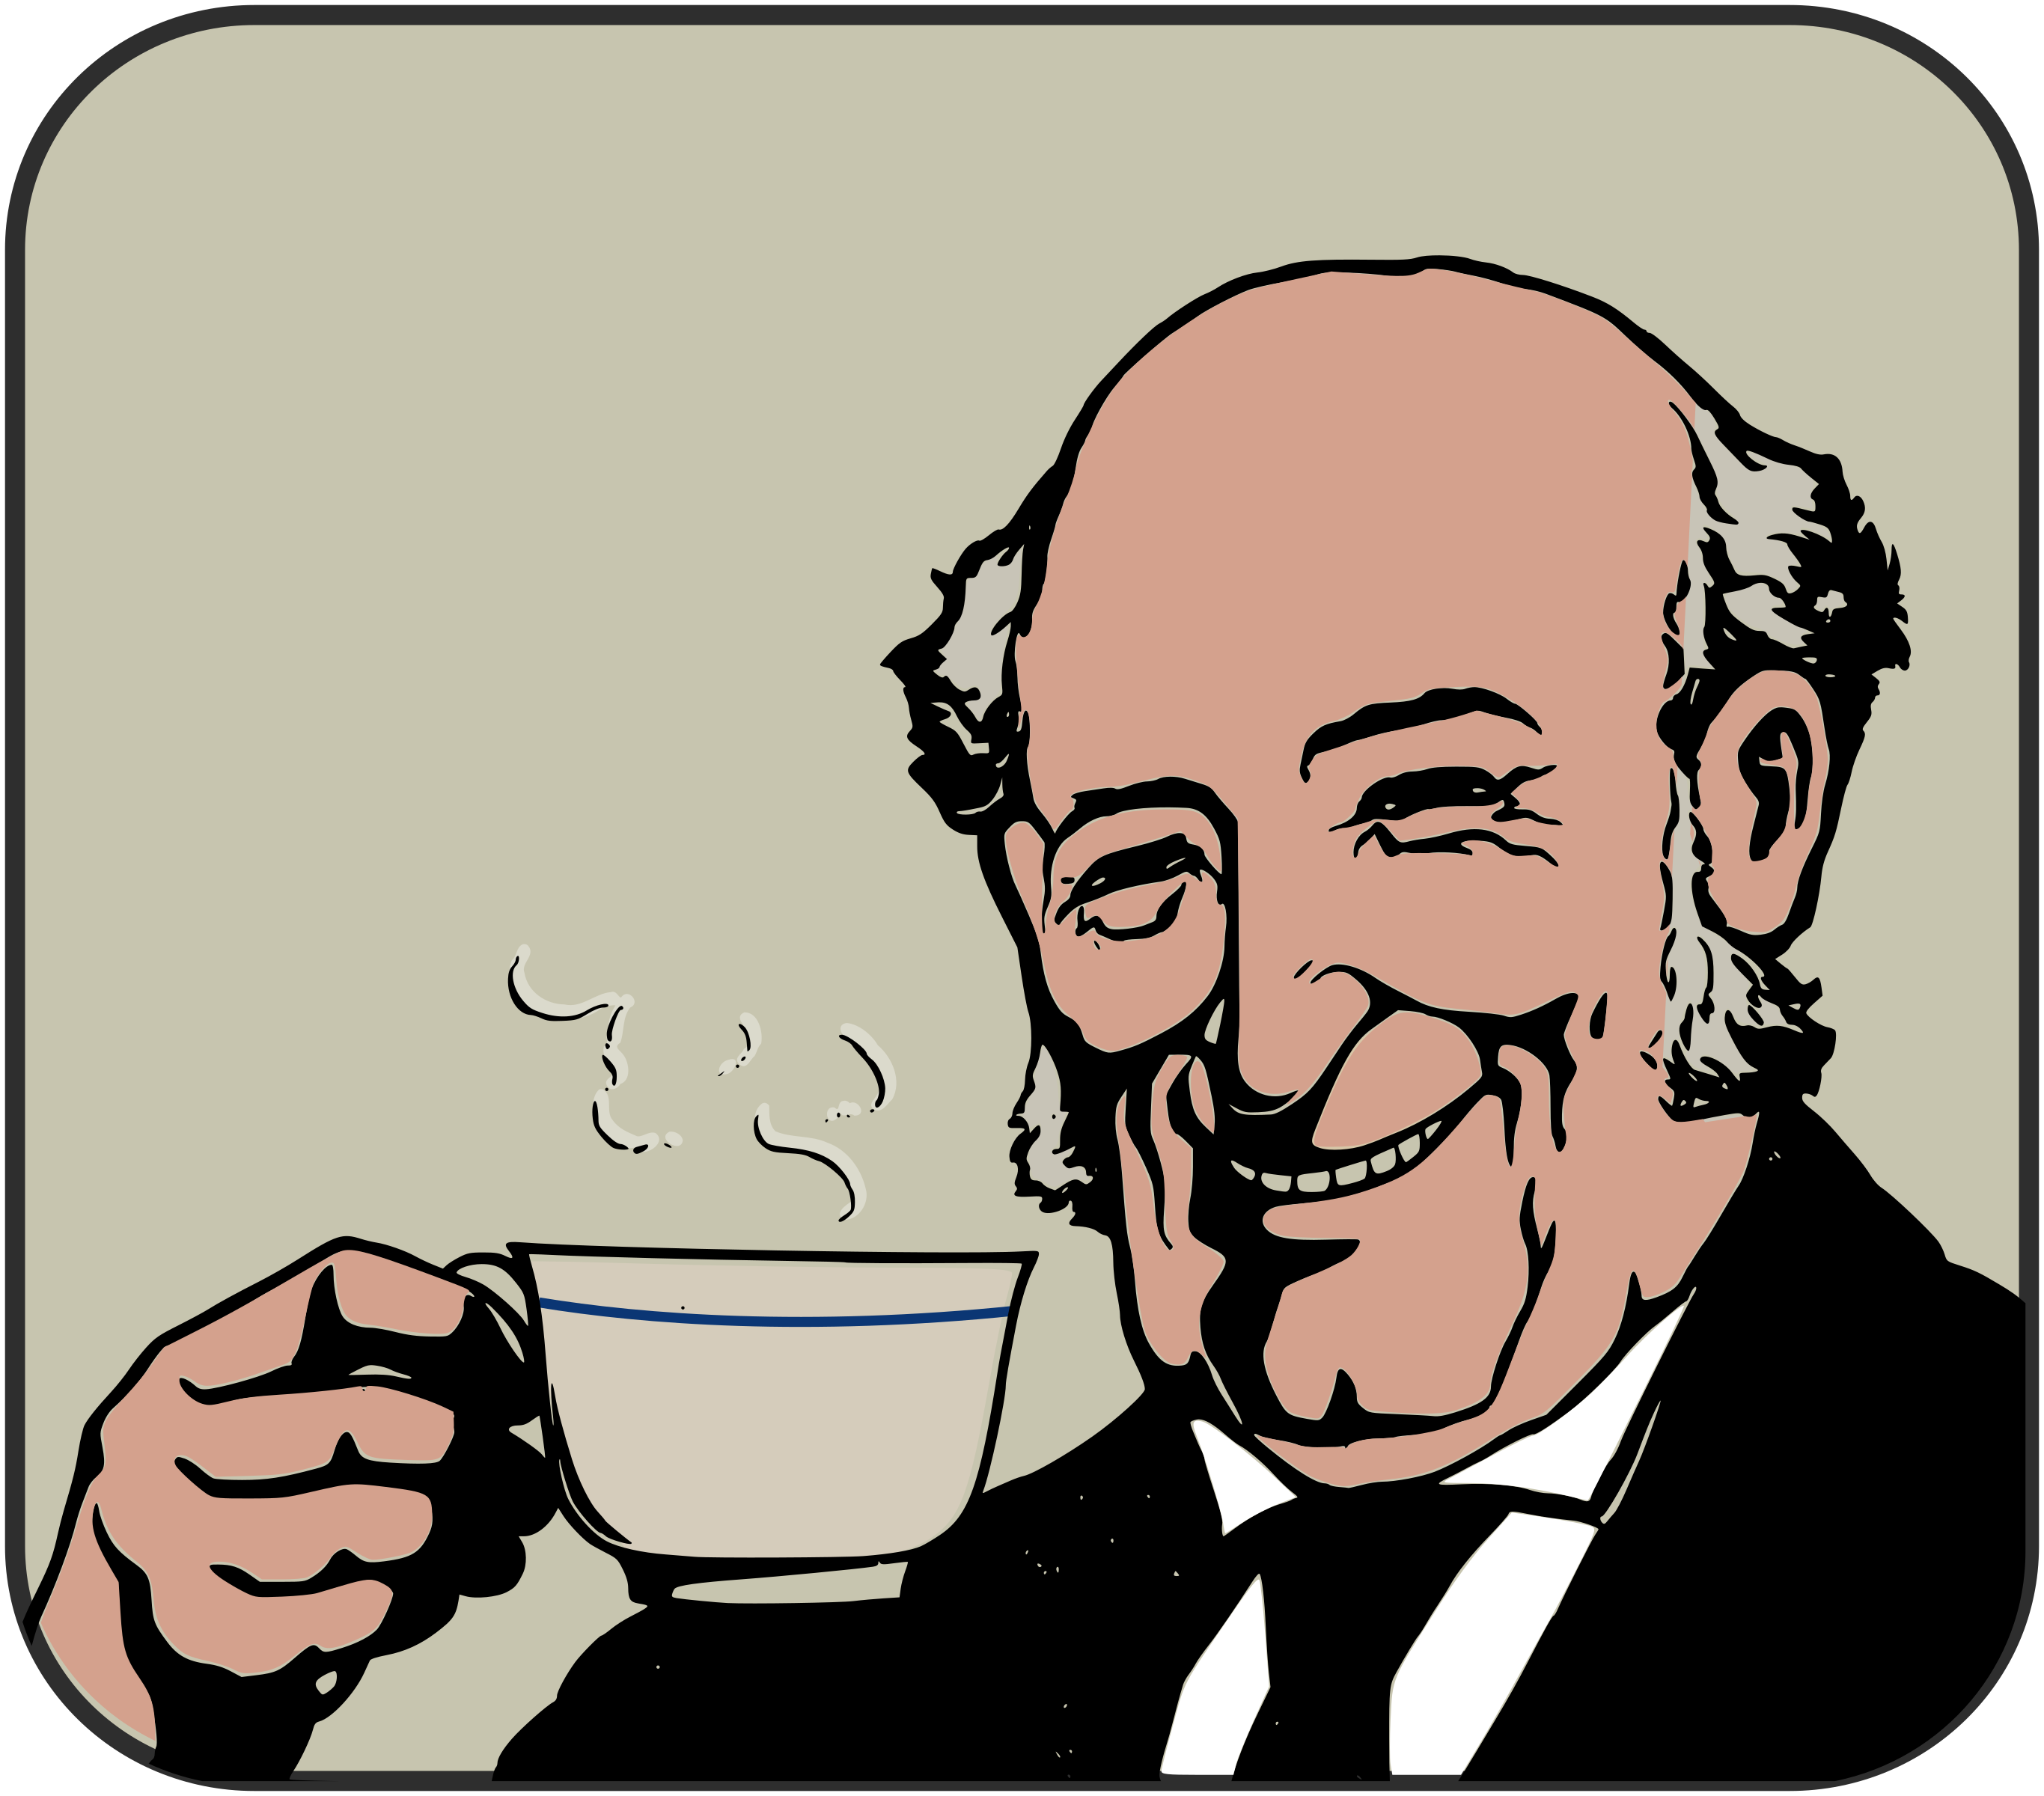 People drinking tea clipart.